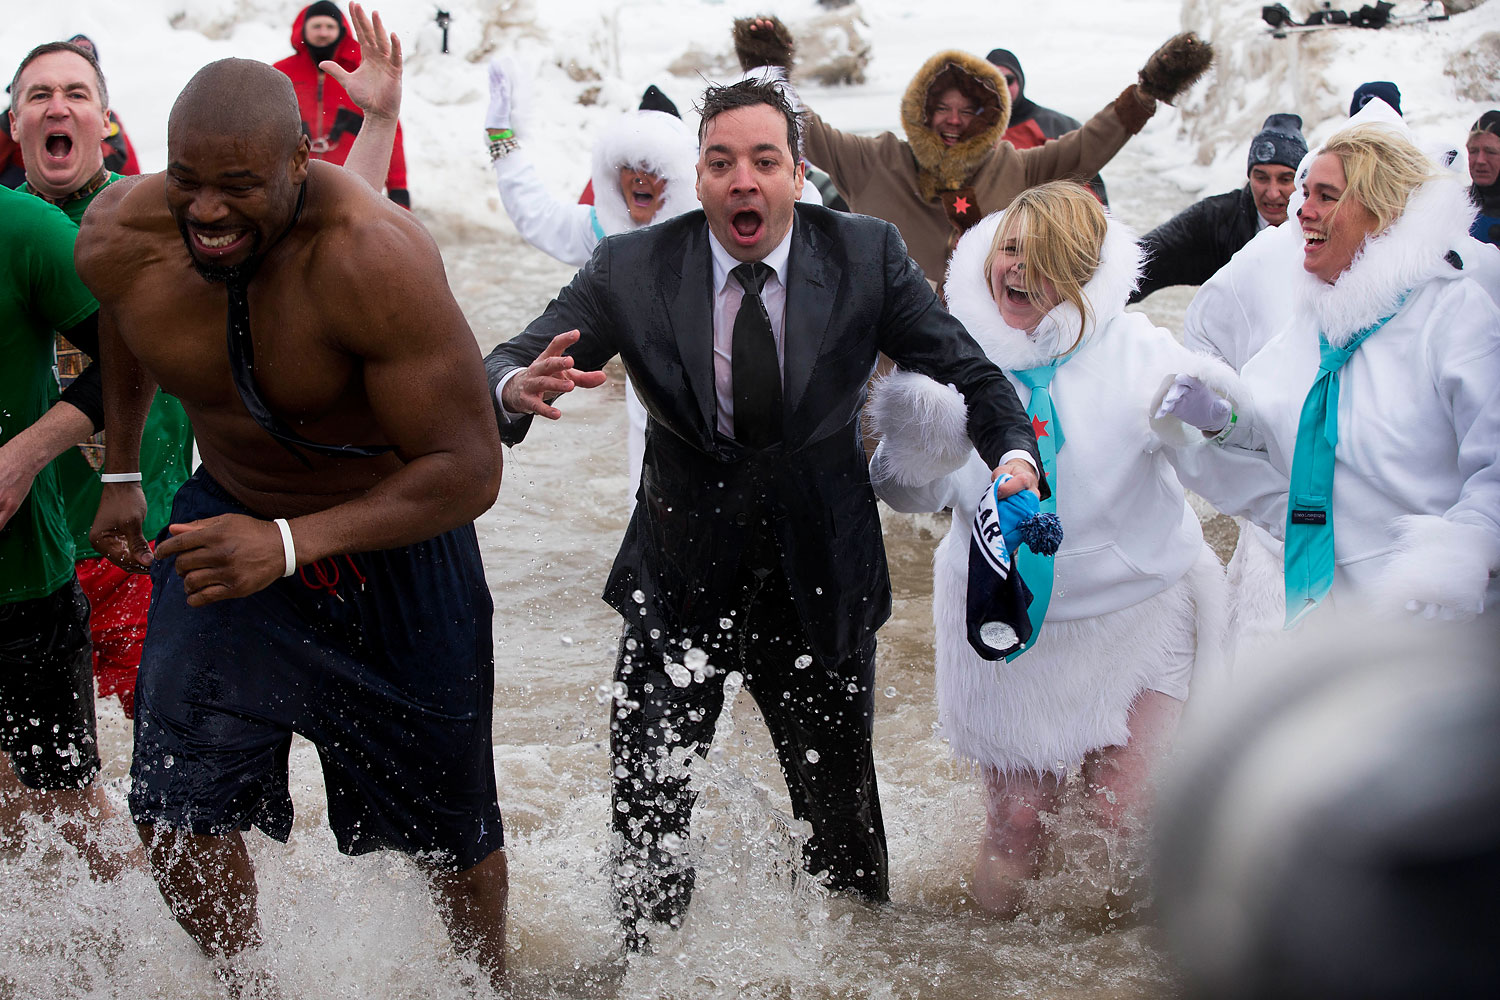 The Tonight Show  host Jimmy Fallon, center, exits the water during the Chicago Polar Plunge, Sunday, March 2, 2014, in Chicago. Fallon joined Chicago Mayor Rahm Emanuel in the event.